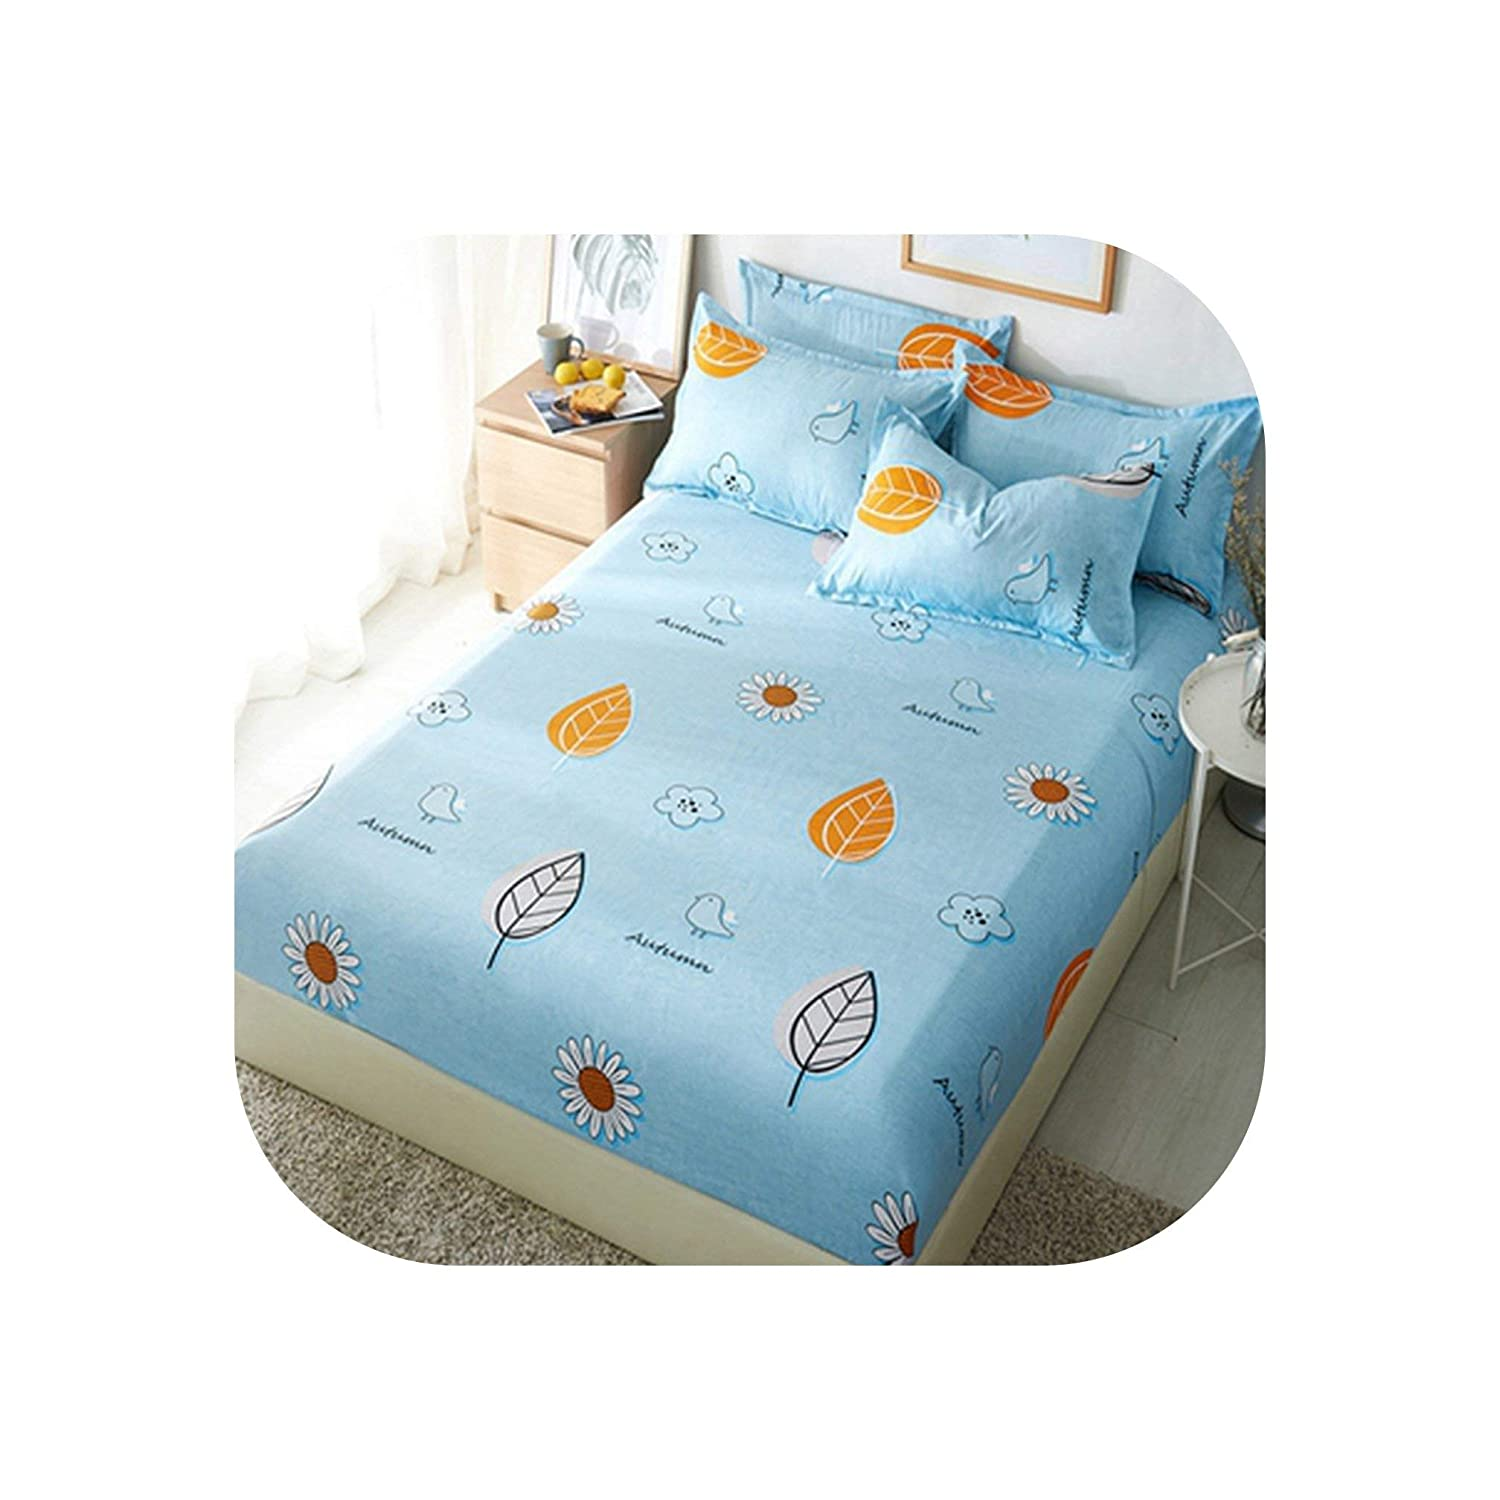 1pcs Polyester White Yellow Leaves Printed Bed Sheet Bedding Fitted Sheets Mattress Cover Bedspreads with Elastic Band Bedsheet,Fitted Sheet1,Pillowcase 2pcs